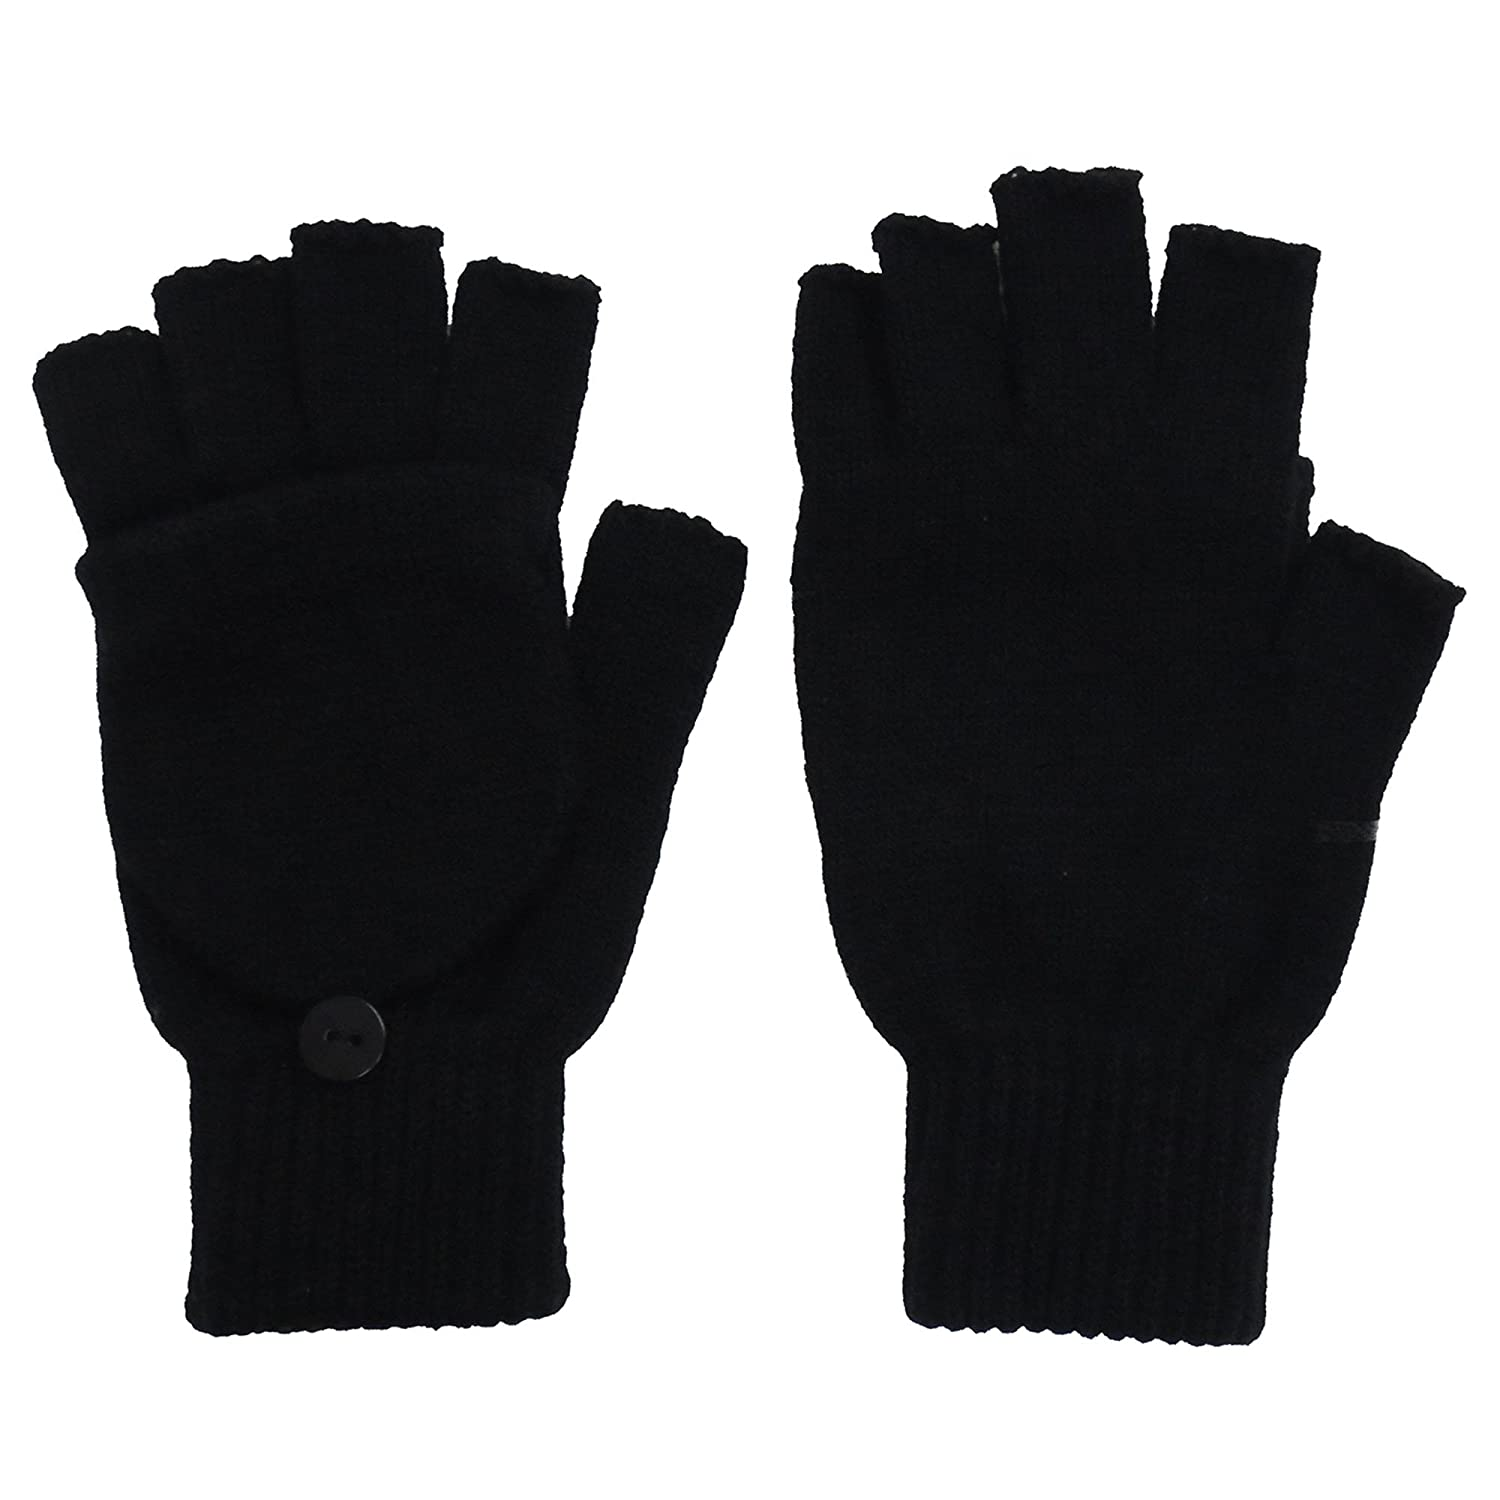 Fingerless gloves amazon - Amazon Com Simplicity Winter Fingerless Gloves With Flap Cover Mitten Gloves 56_black Sports Outdoors